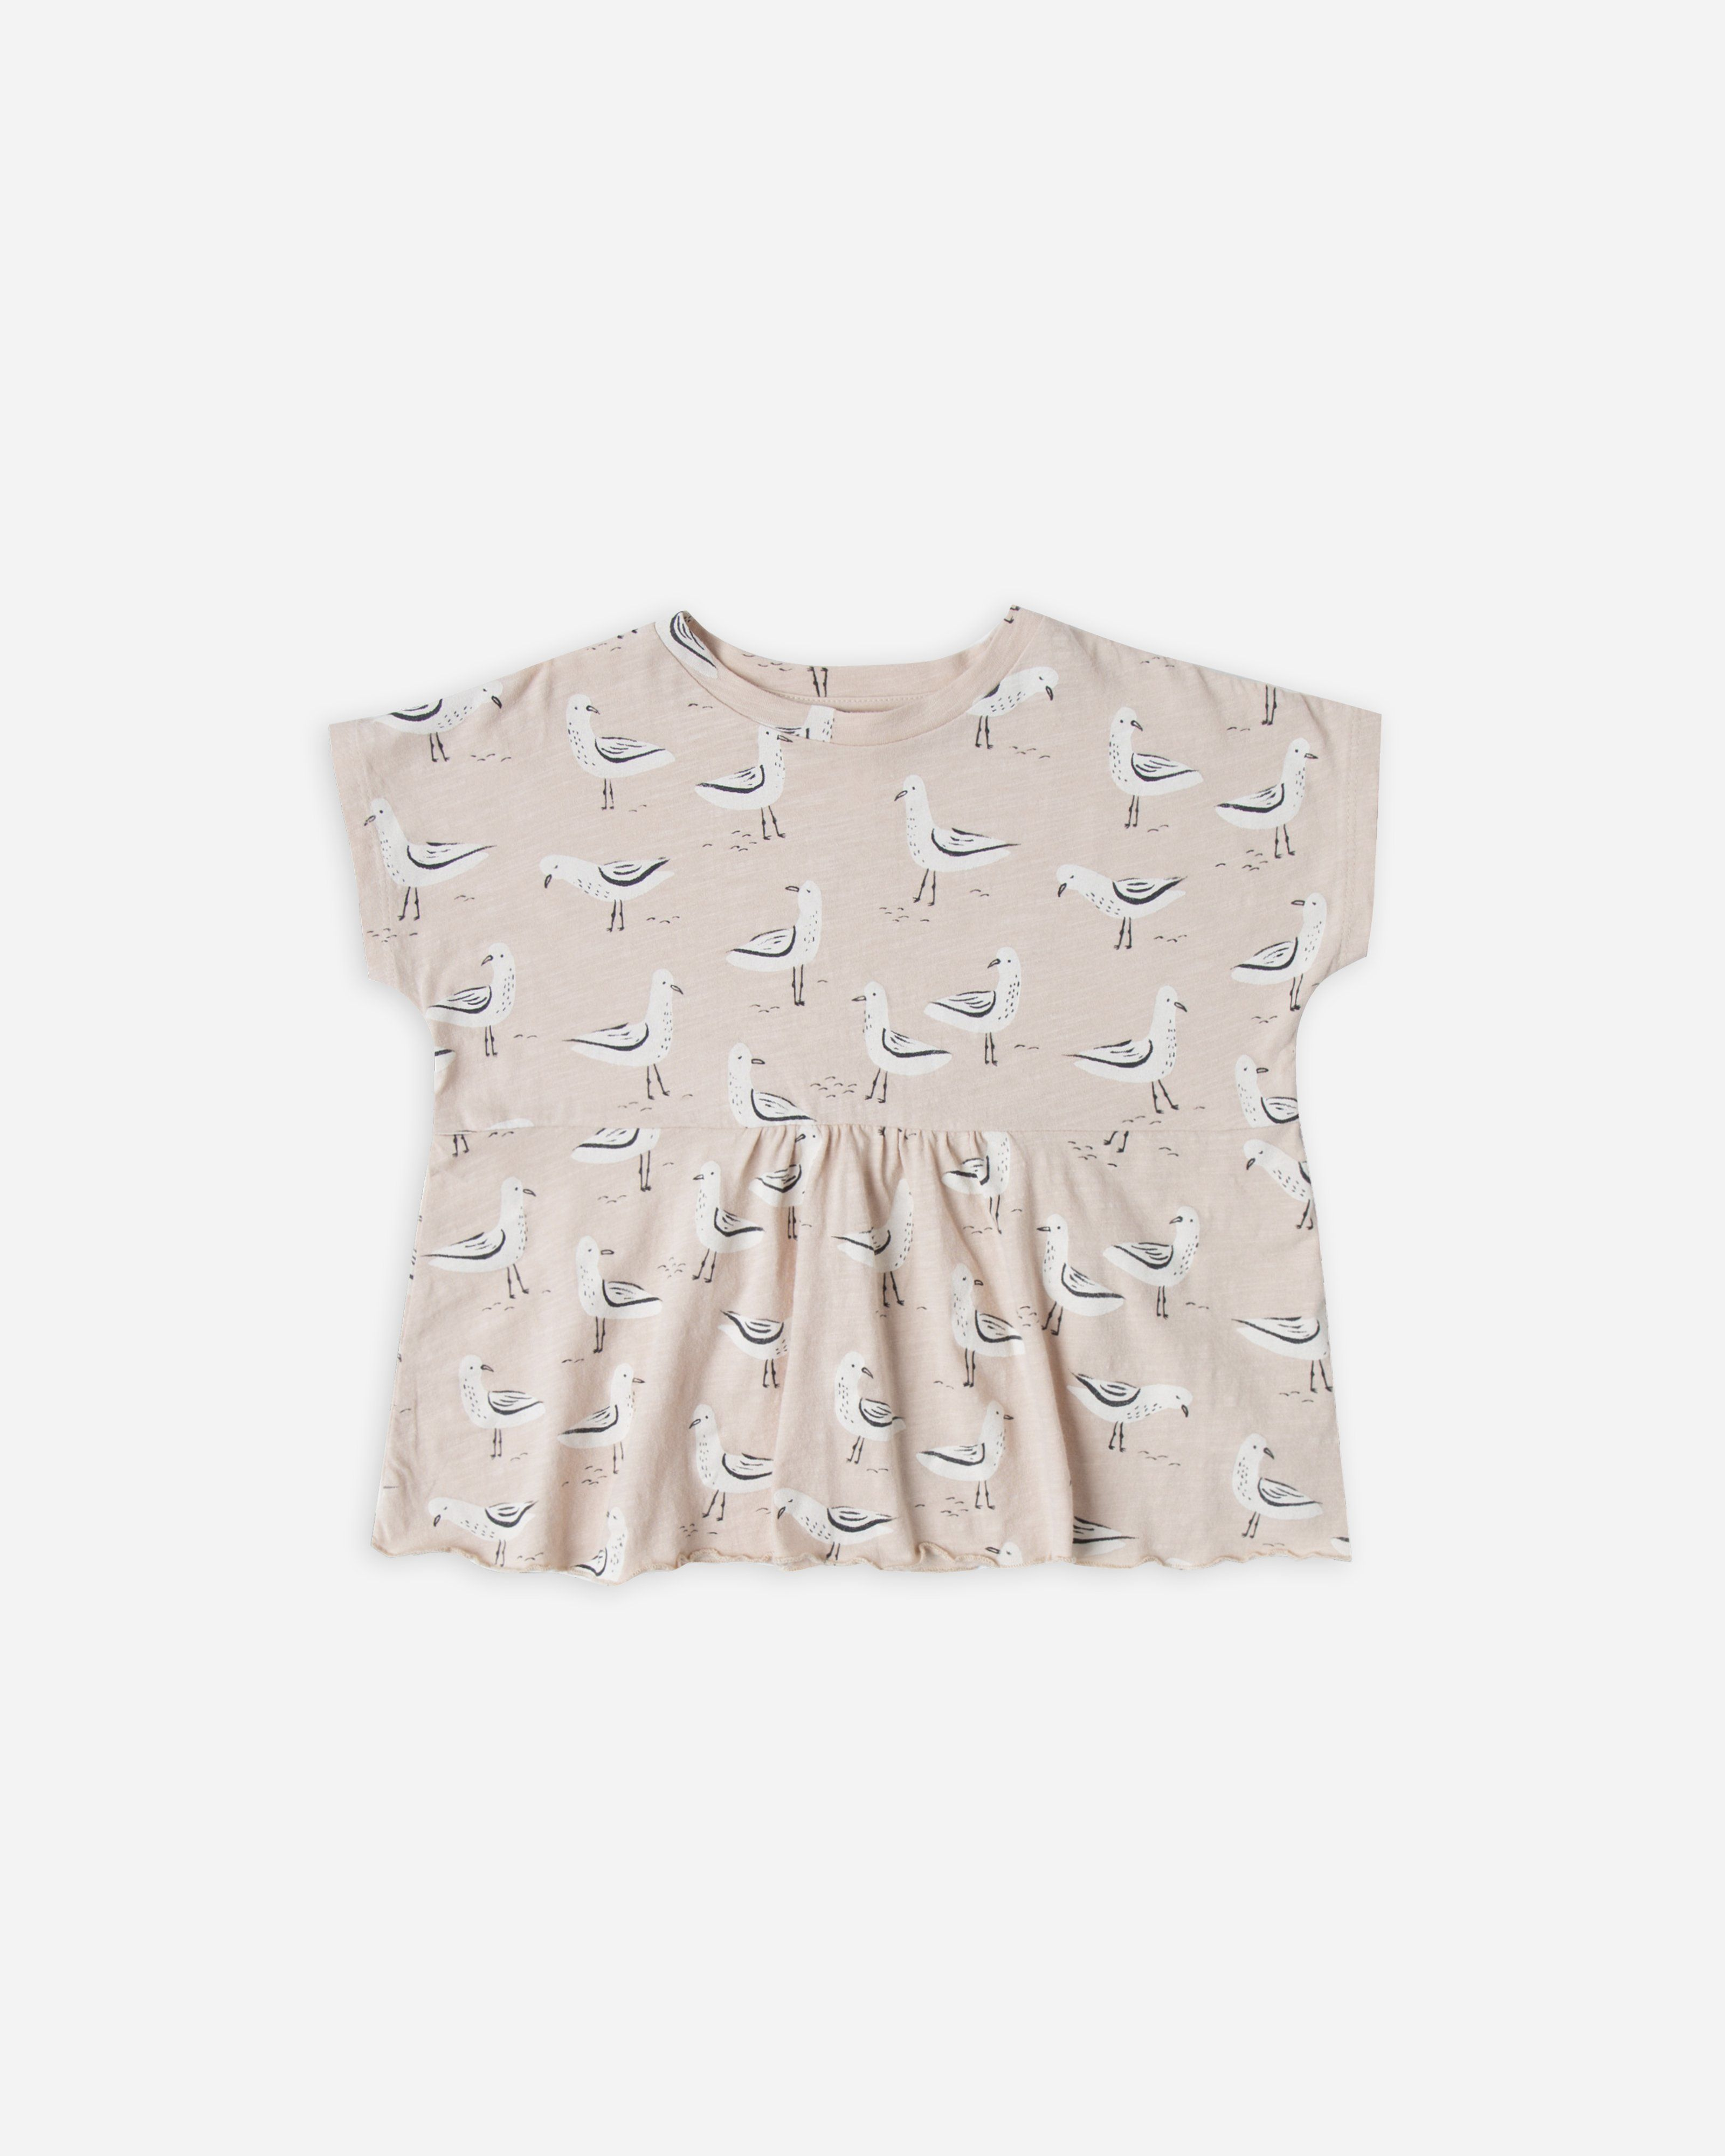 40a95150f1af Pearl colored top with seagull print. Short sleeves with gathered detail.  100% cotton